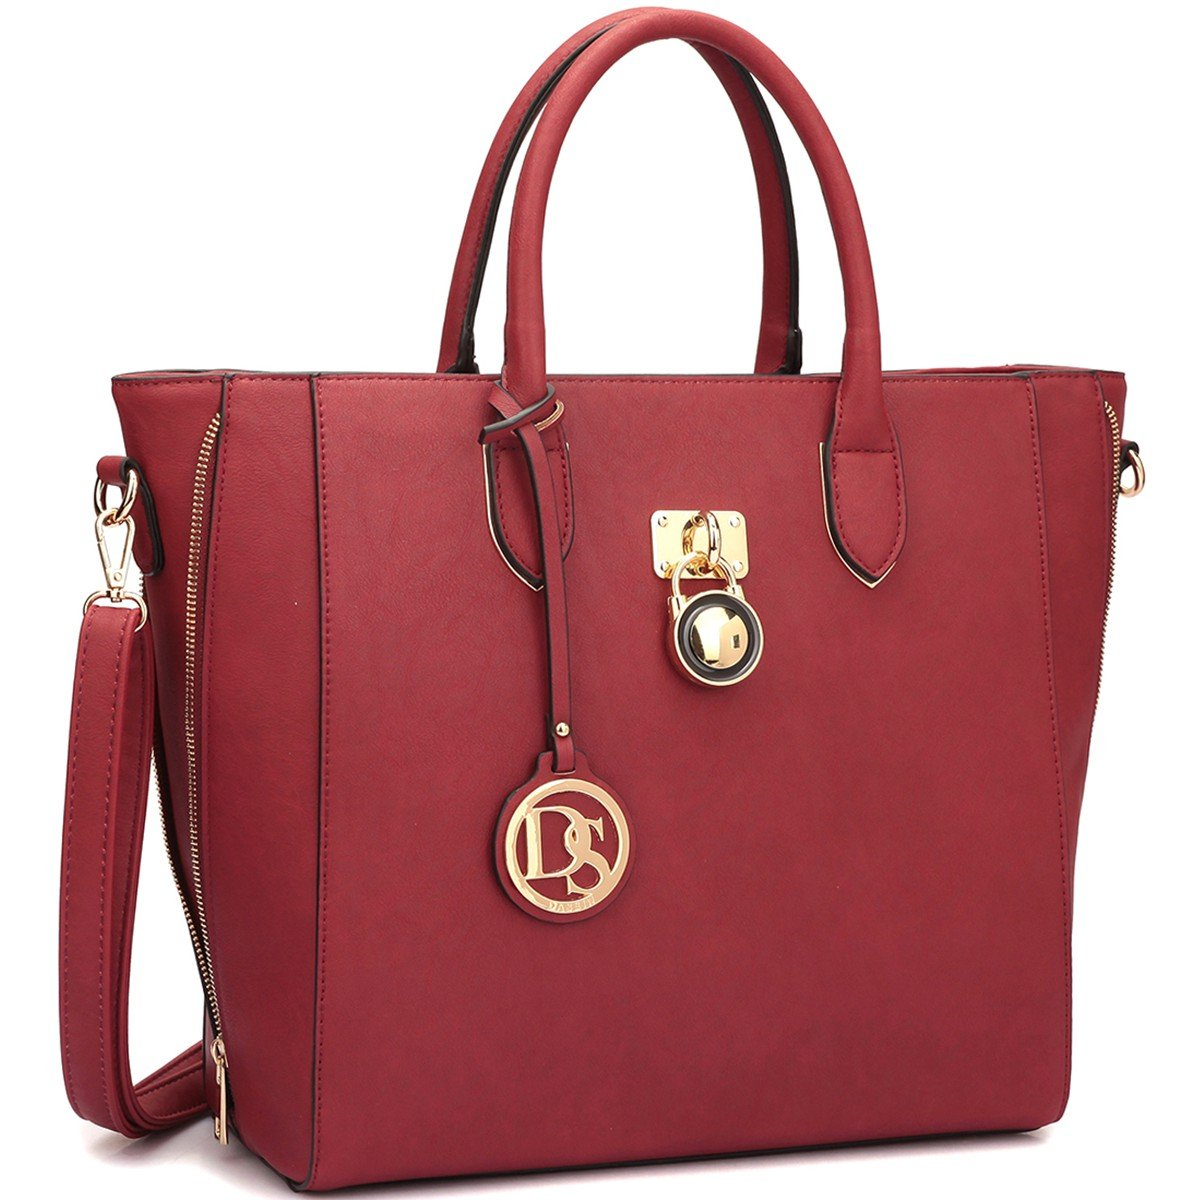 Solid-Color Emblem Tote Handbag